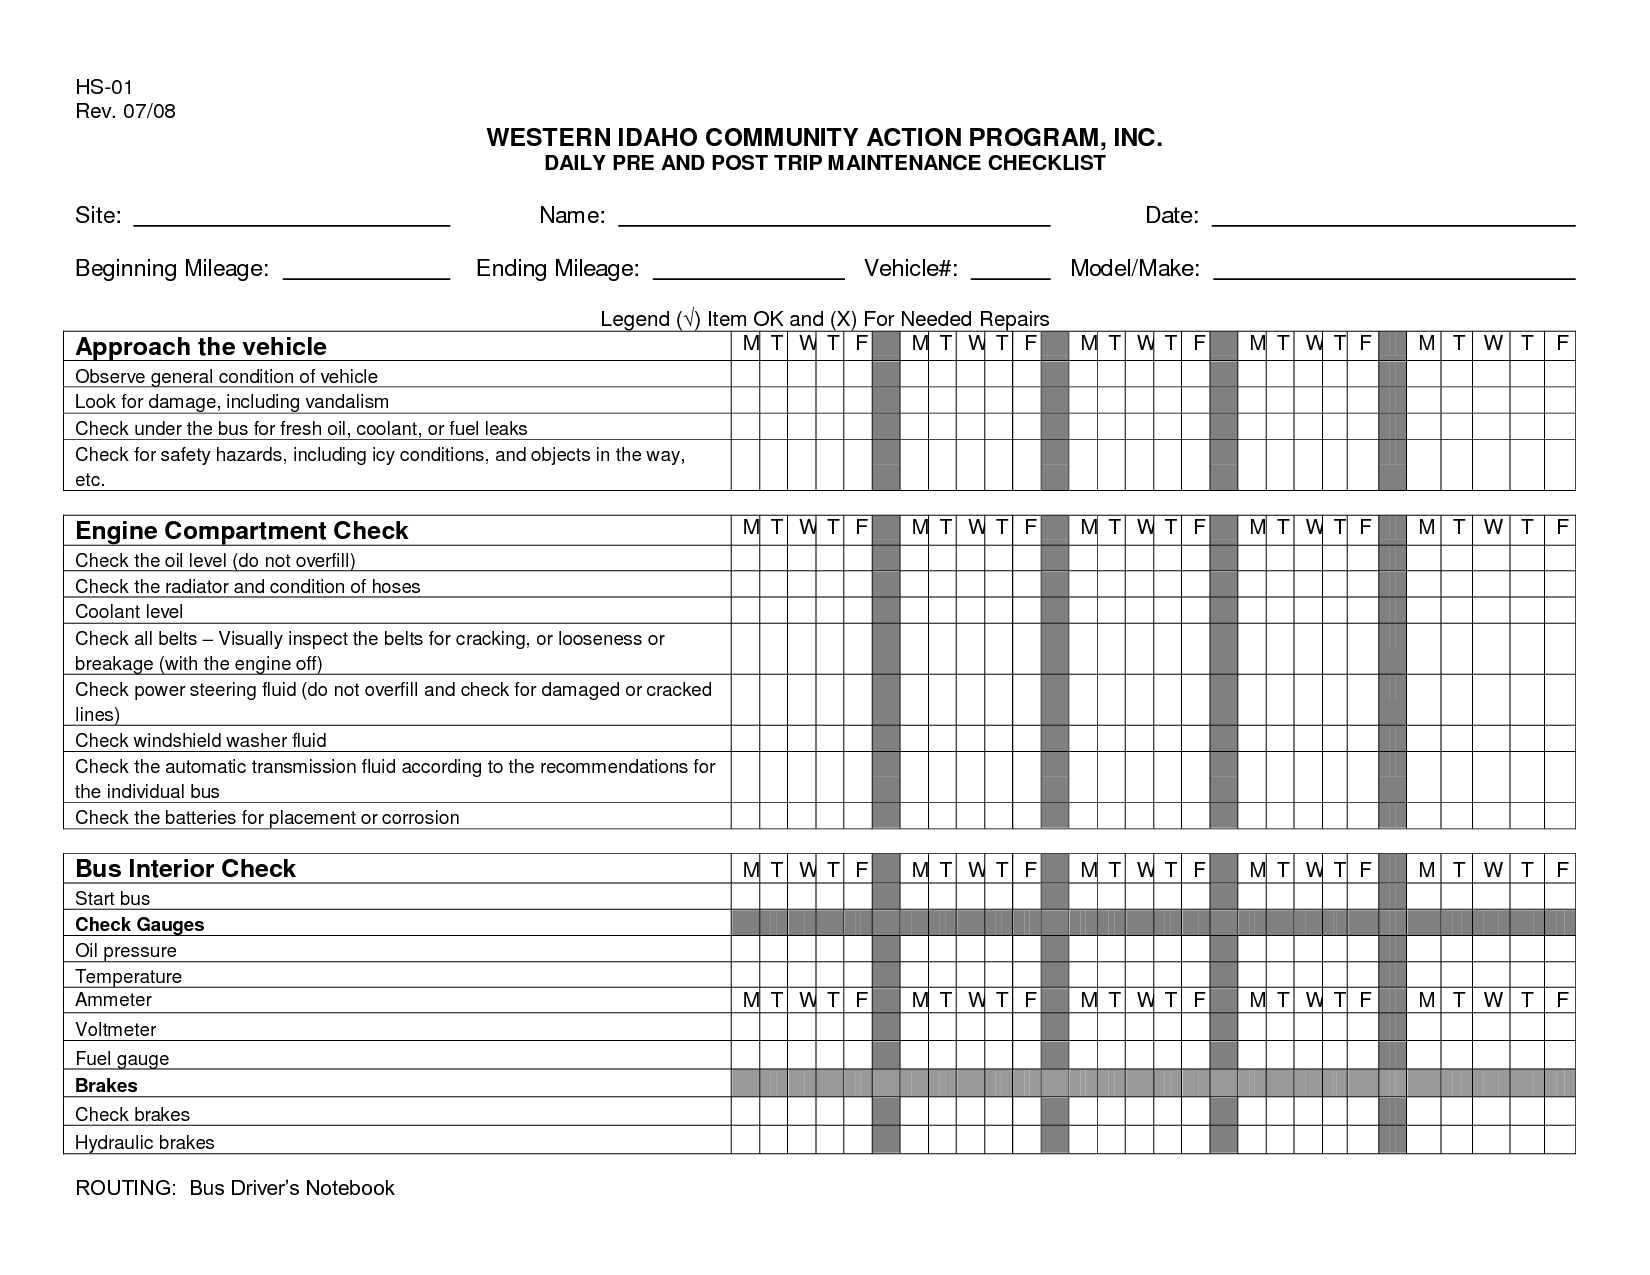 Daily Vehicle Maintenance Checklist Template